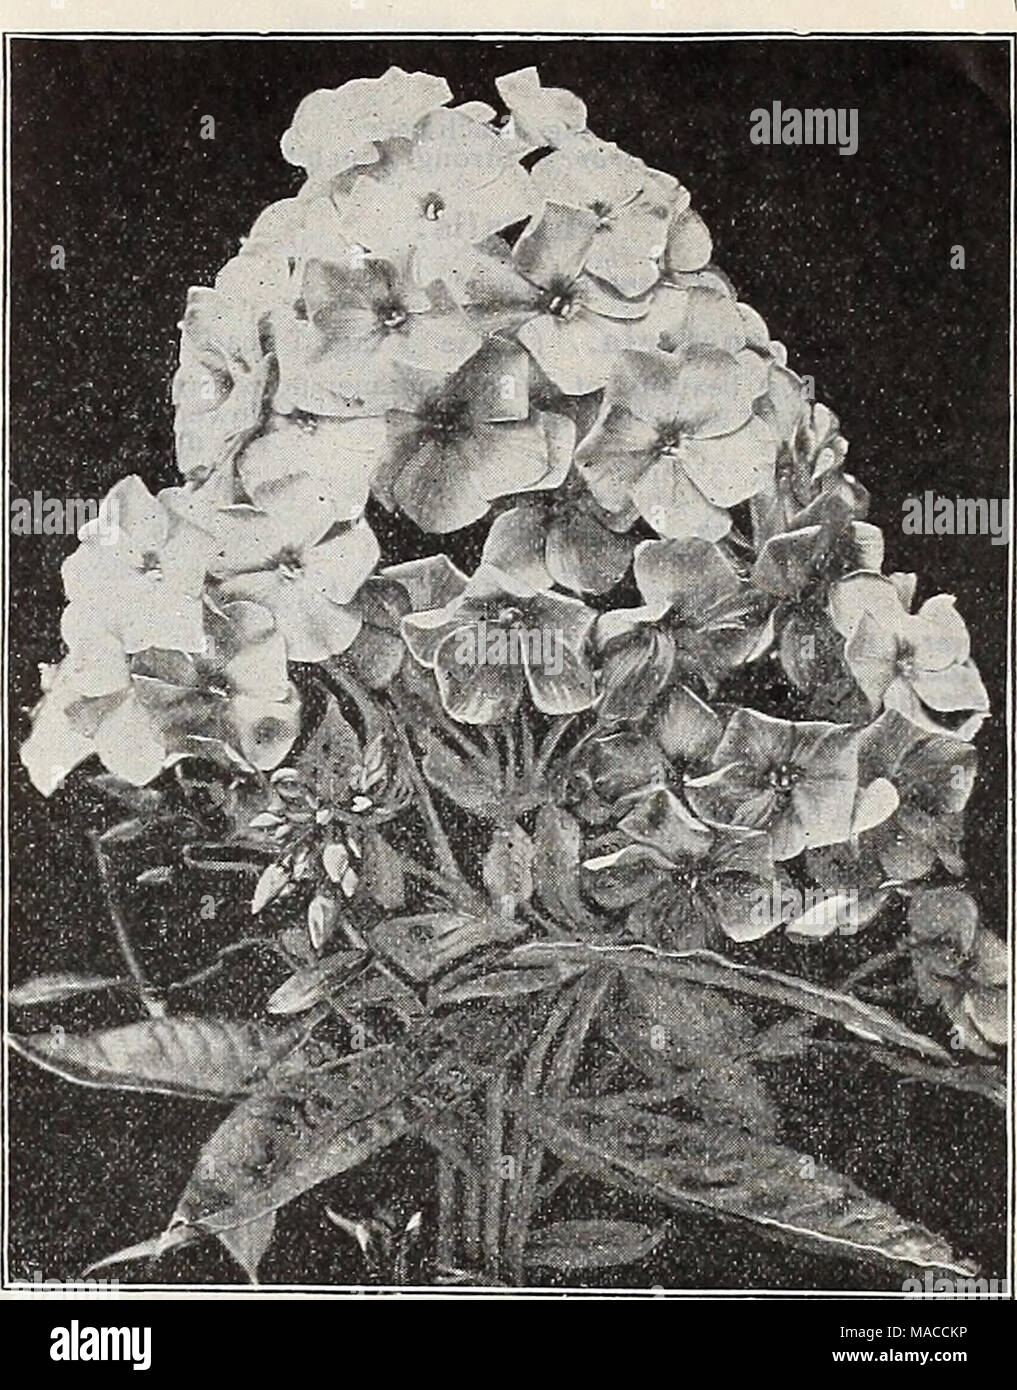 . Dreer's wholesale price list spring edition April 1910 June : seeds plants and bulbs for florists fertilizers, insecticides, tools, sundries, etc . HARDY PHLOX Best Light Varieties With Dark Eyes. Bridesmaid (Tall). White, with large crimson-carmine centre. Colibri (Tall). White, with crimson-carmine centre; very late. Henry Murger (Tall). Beautiful variety; white, crimson-carmine centre. H. O. Wijers (Tall). Glistening white, with bright crimson-carmine eye. Price : Any of the Light Varieties with Dark Eyes, $5.00 per 100 ; $40.00 per 1000. Best Purple and Crimson Varieties. B. Comte (Tall) Stock Photo